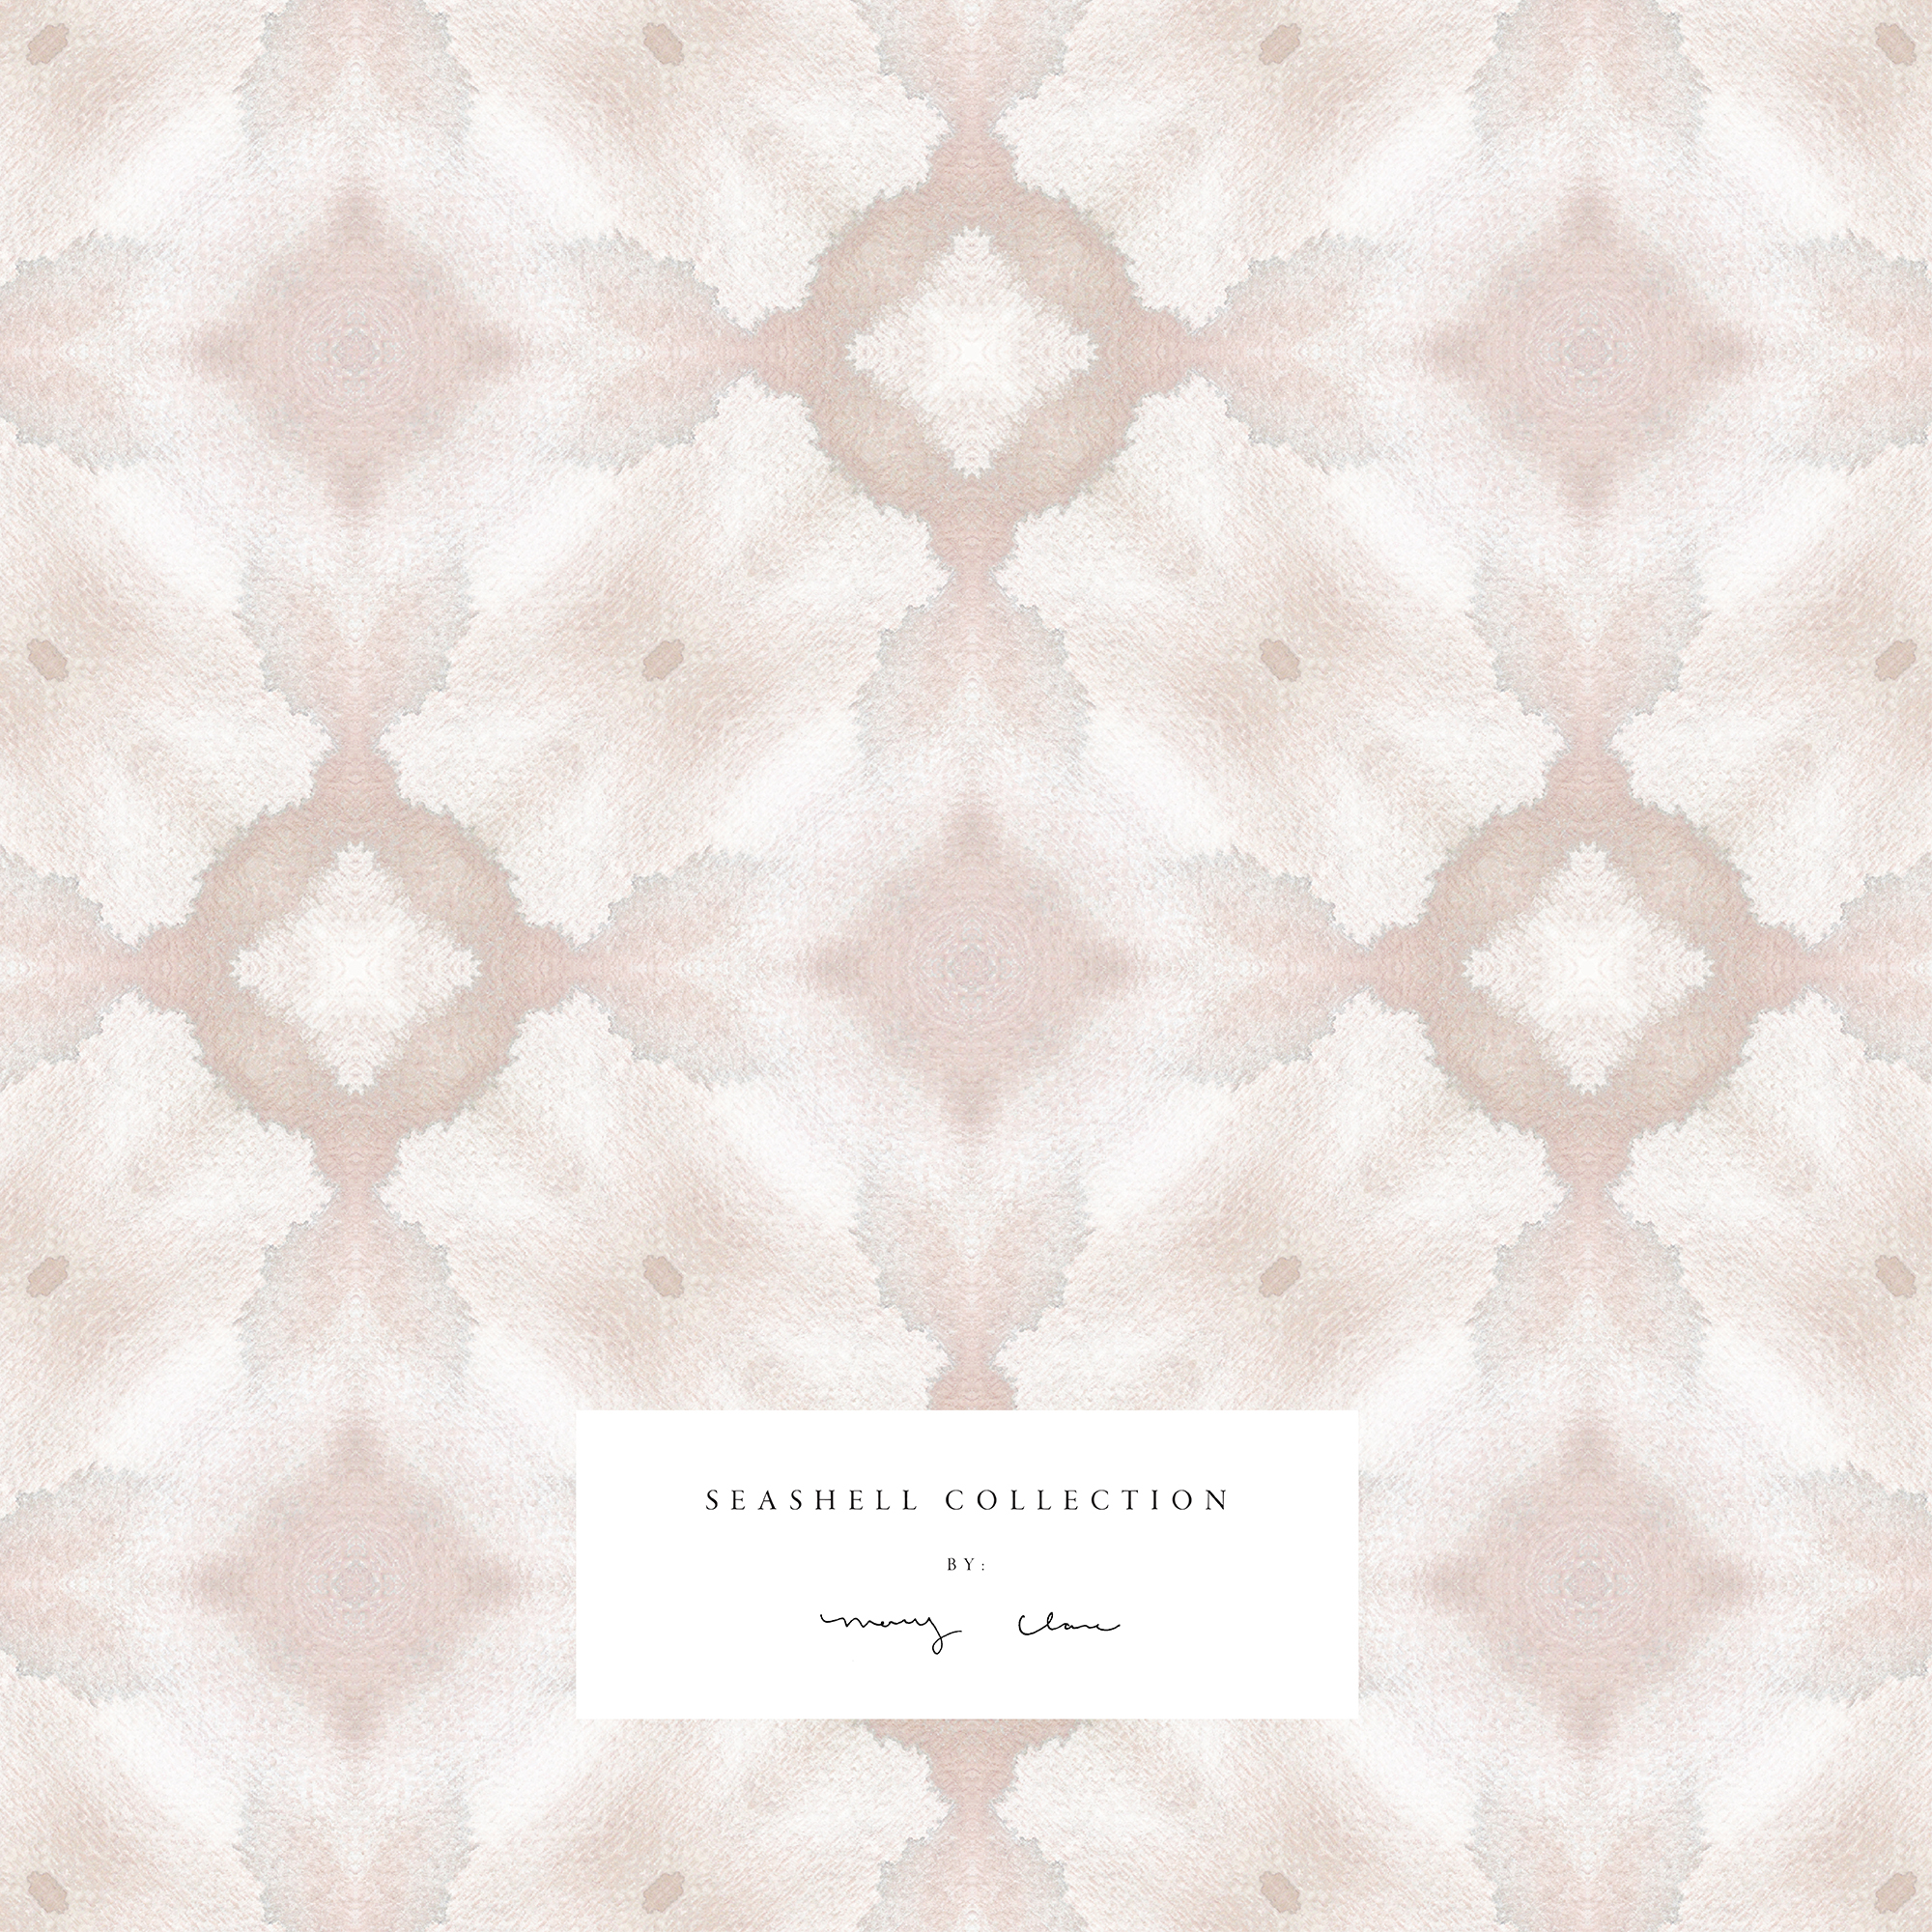 SEASHELL COLLECTION By: Mary Clare Wilkie